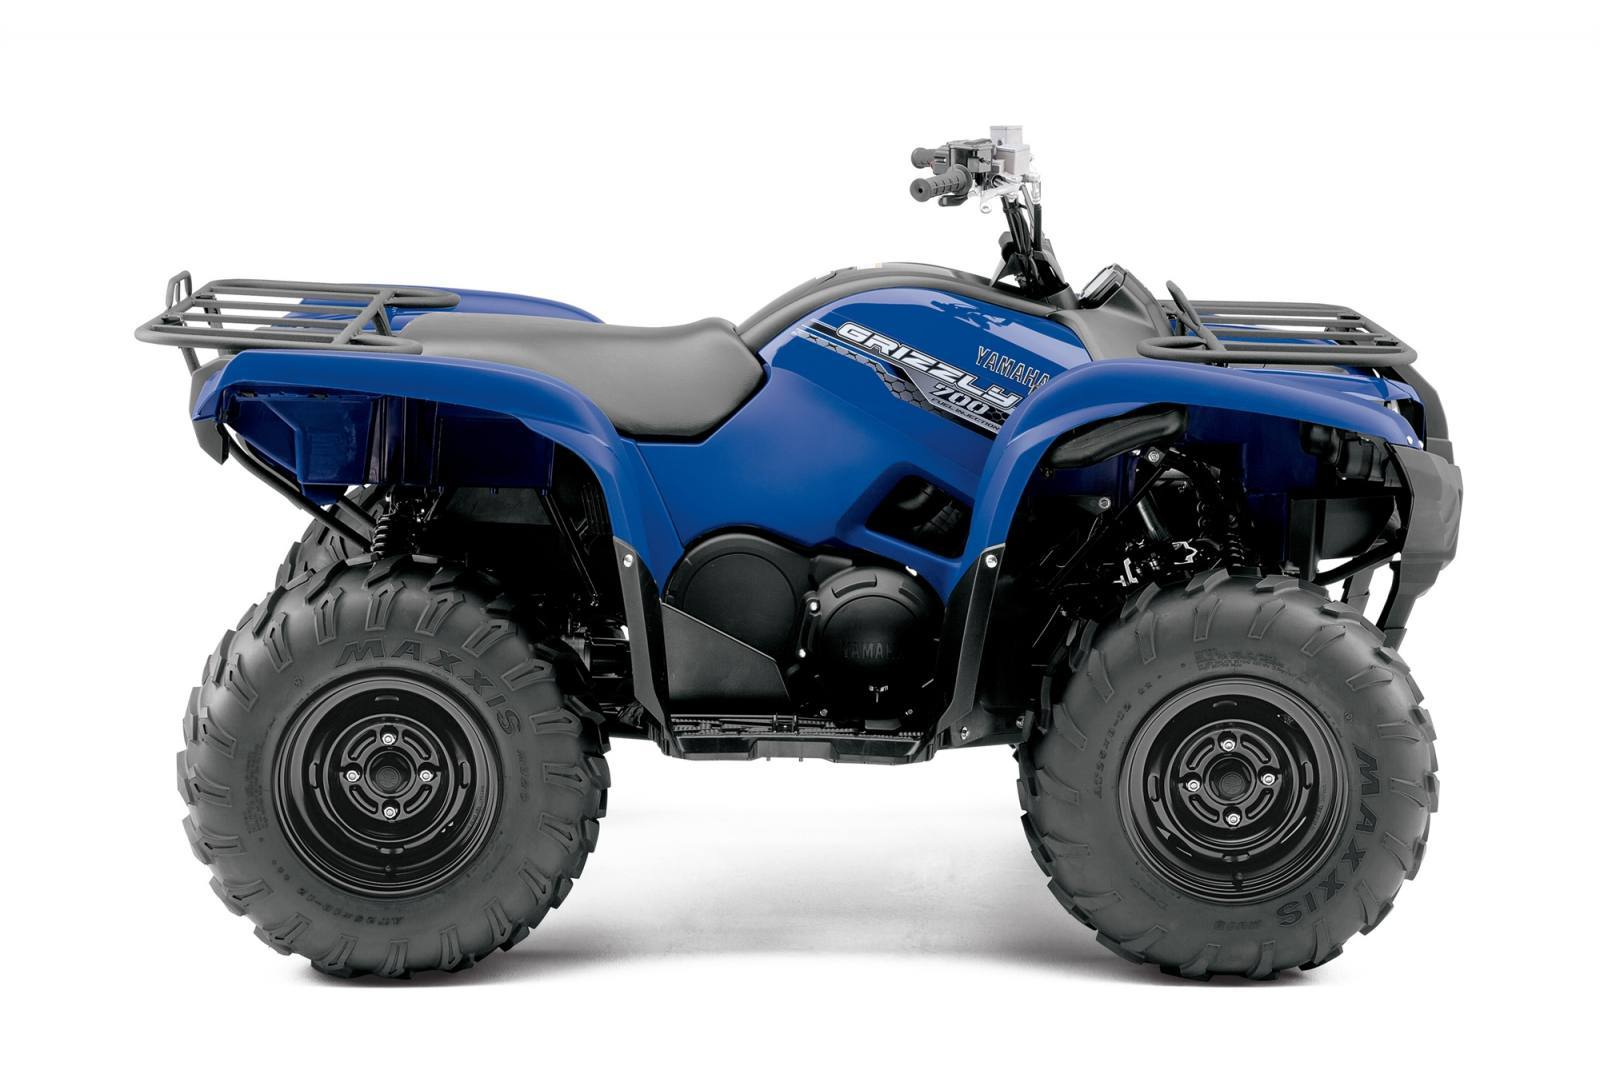 Yamaha GRIZZLY For Sale: 2 Motorcycles - CycleTrader.com